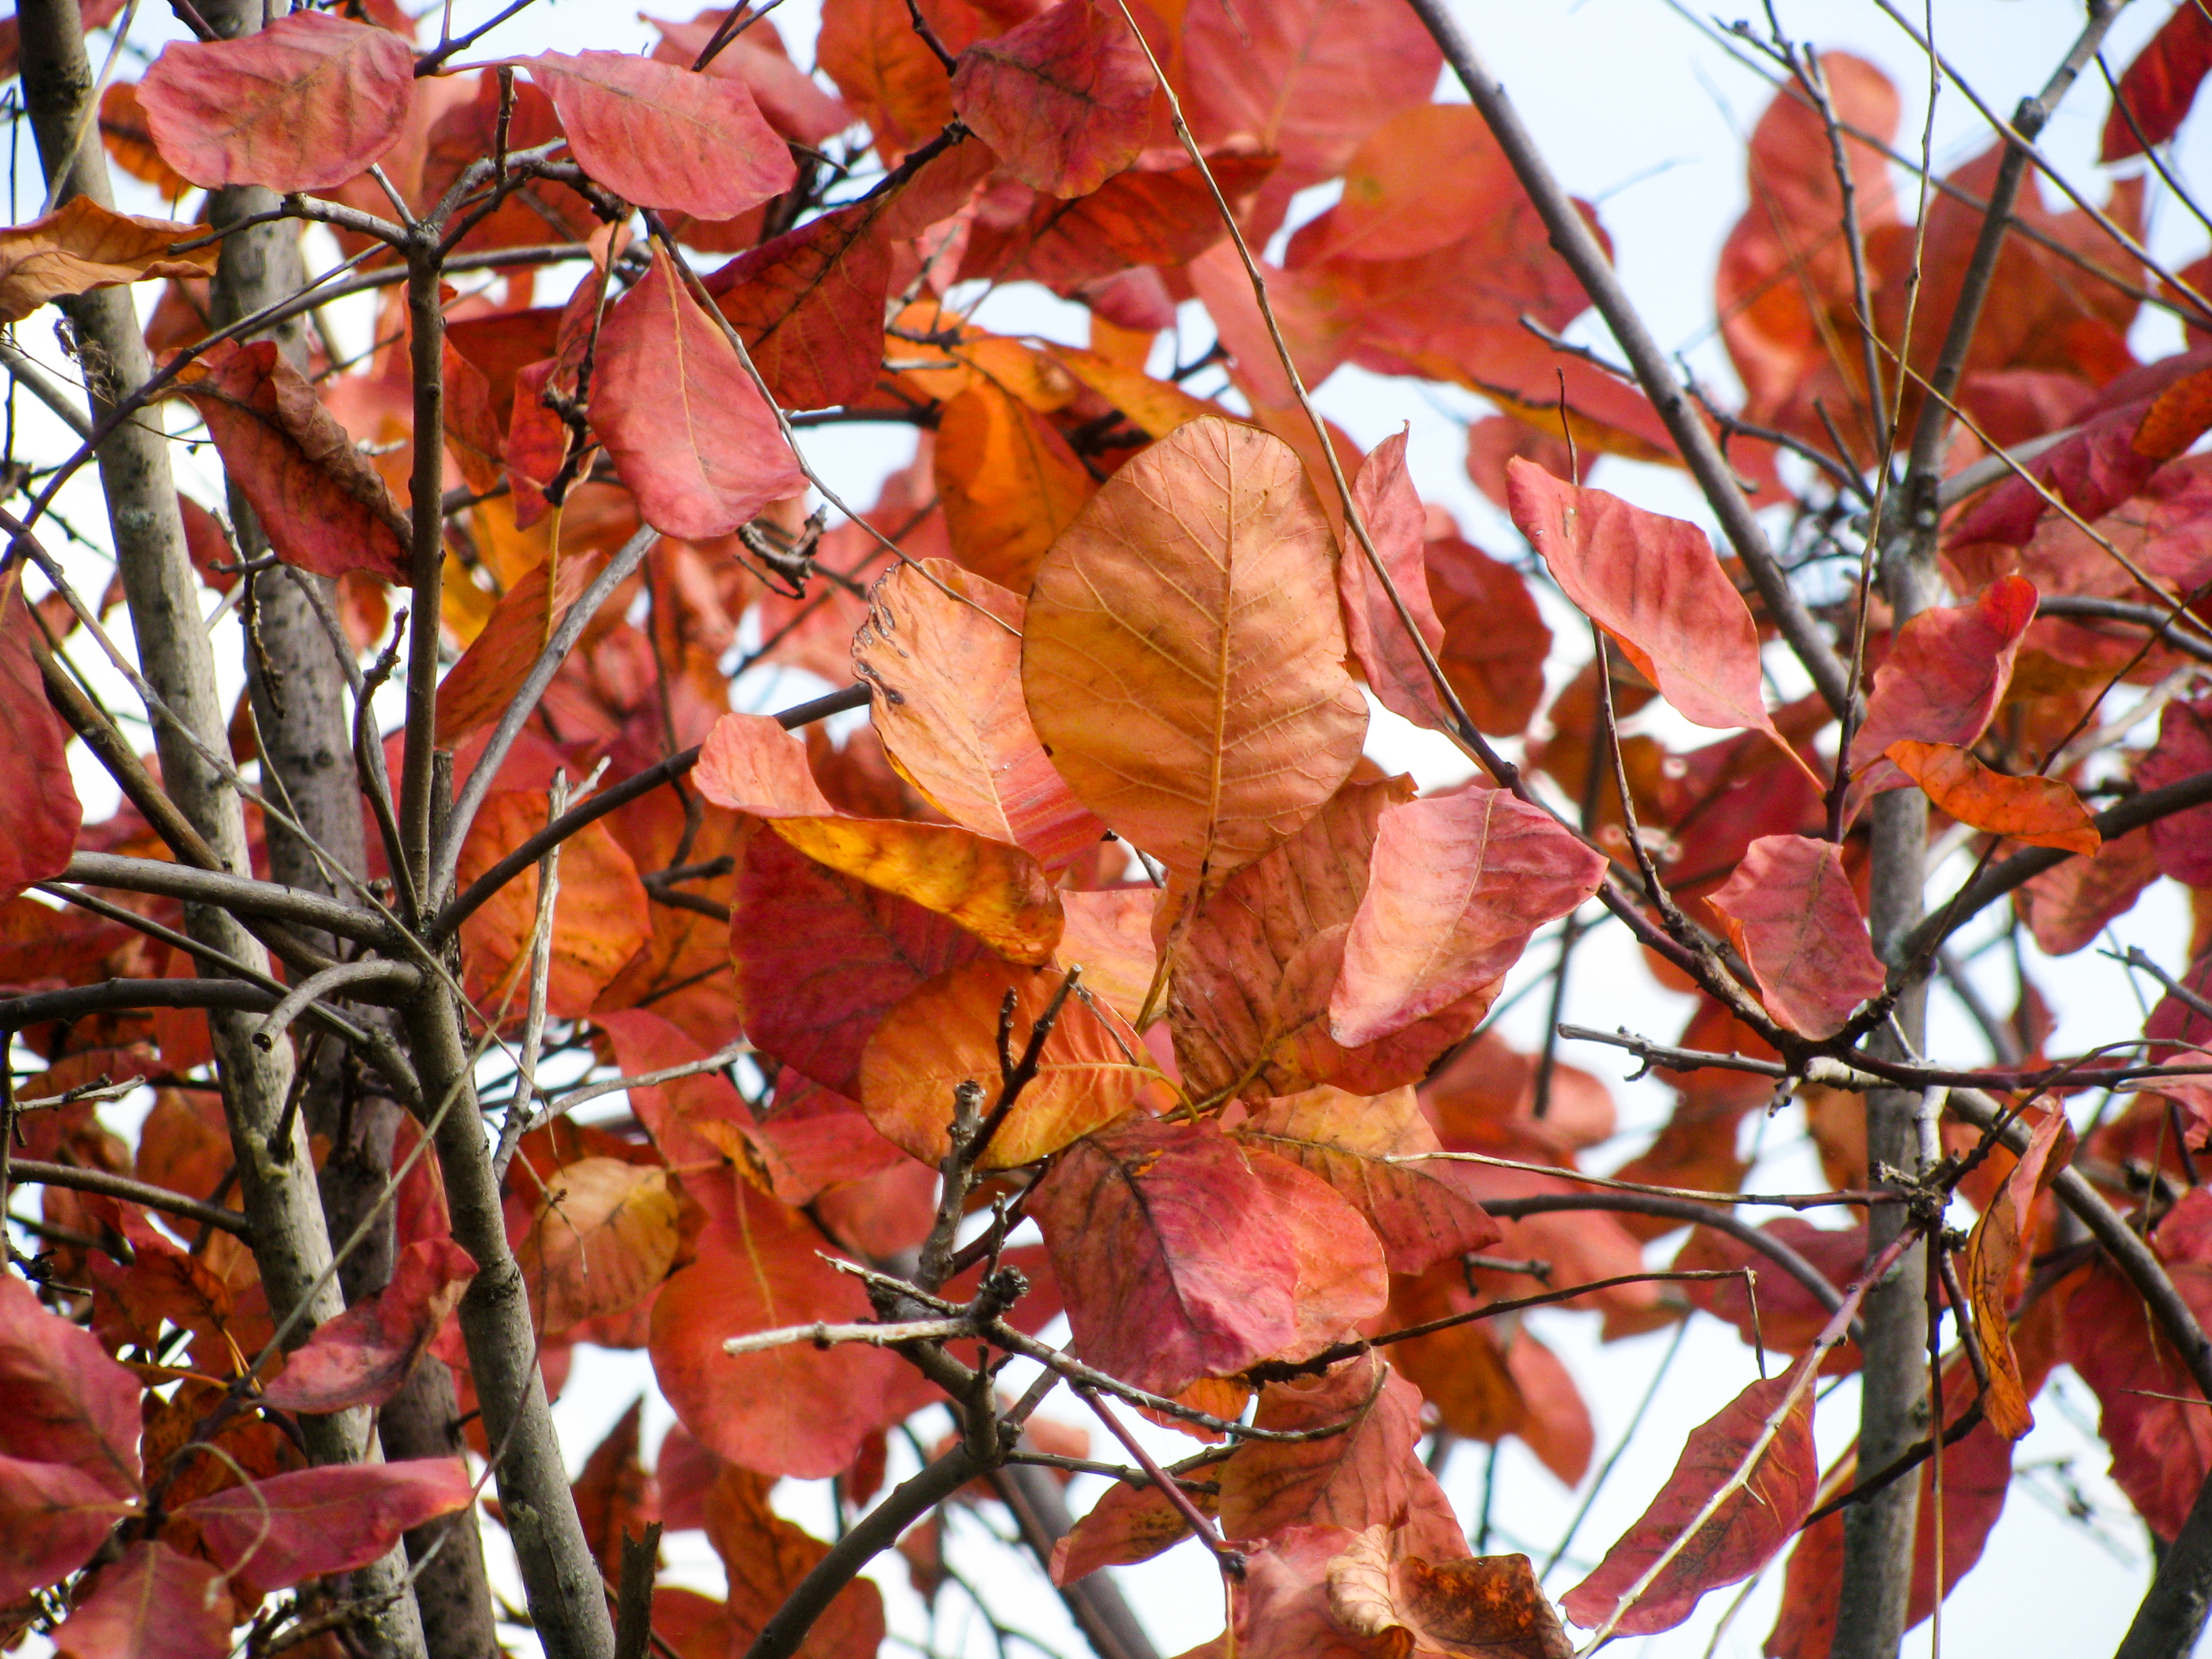 Rust Colored Tree Leaves on Branches, Branch, Cherry blossom, Foliage, Leaf, HQ Photo